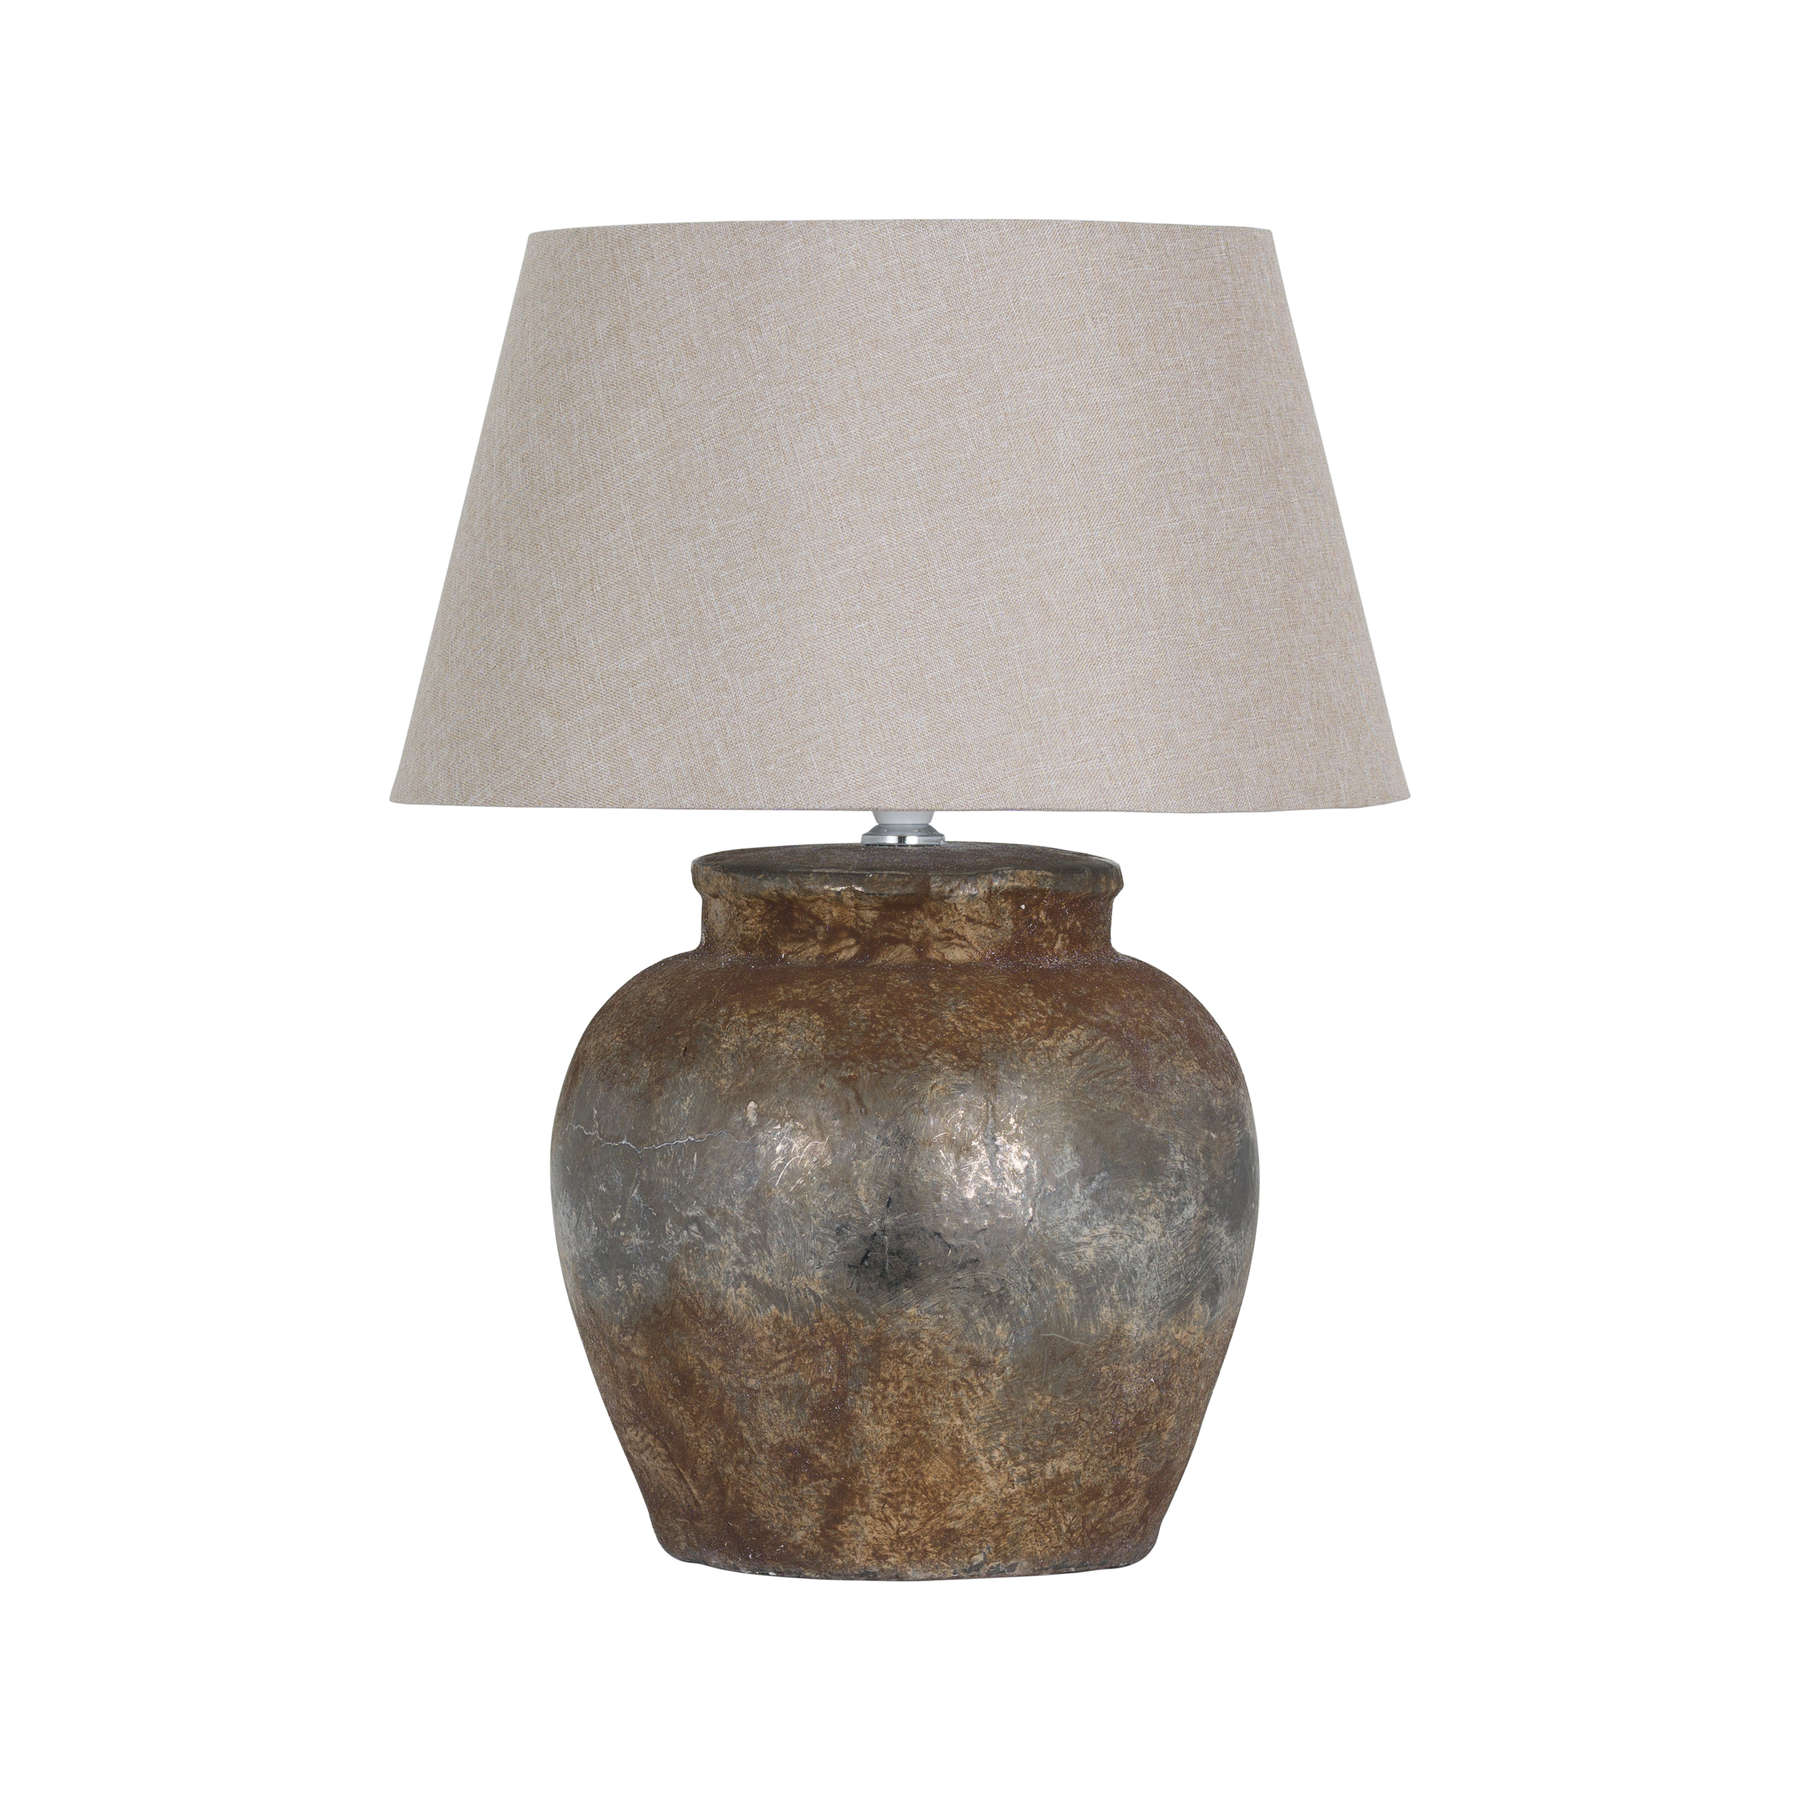 Castello Aged Stone Ceramic Table Lamp